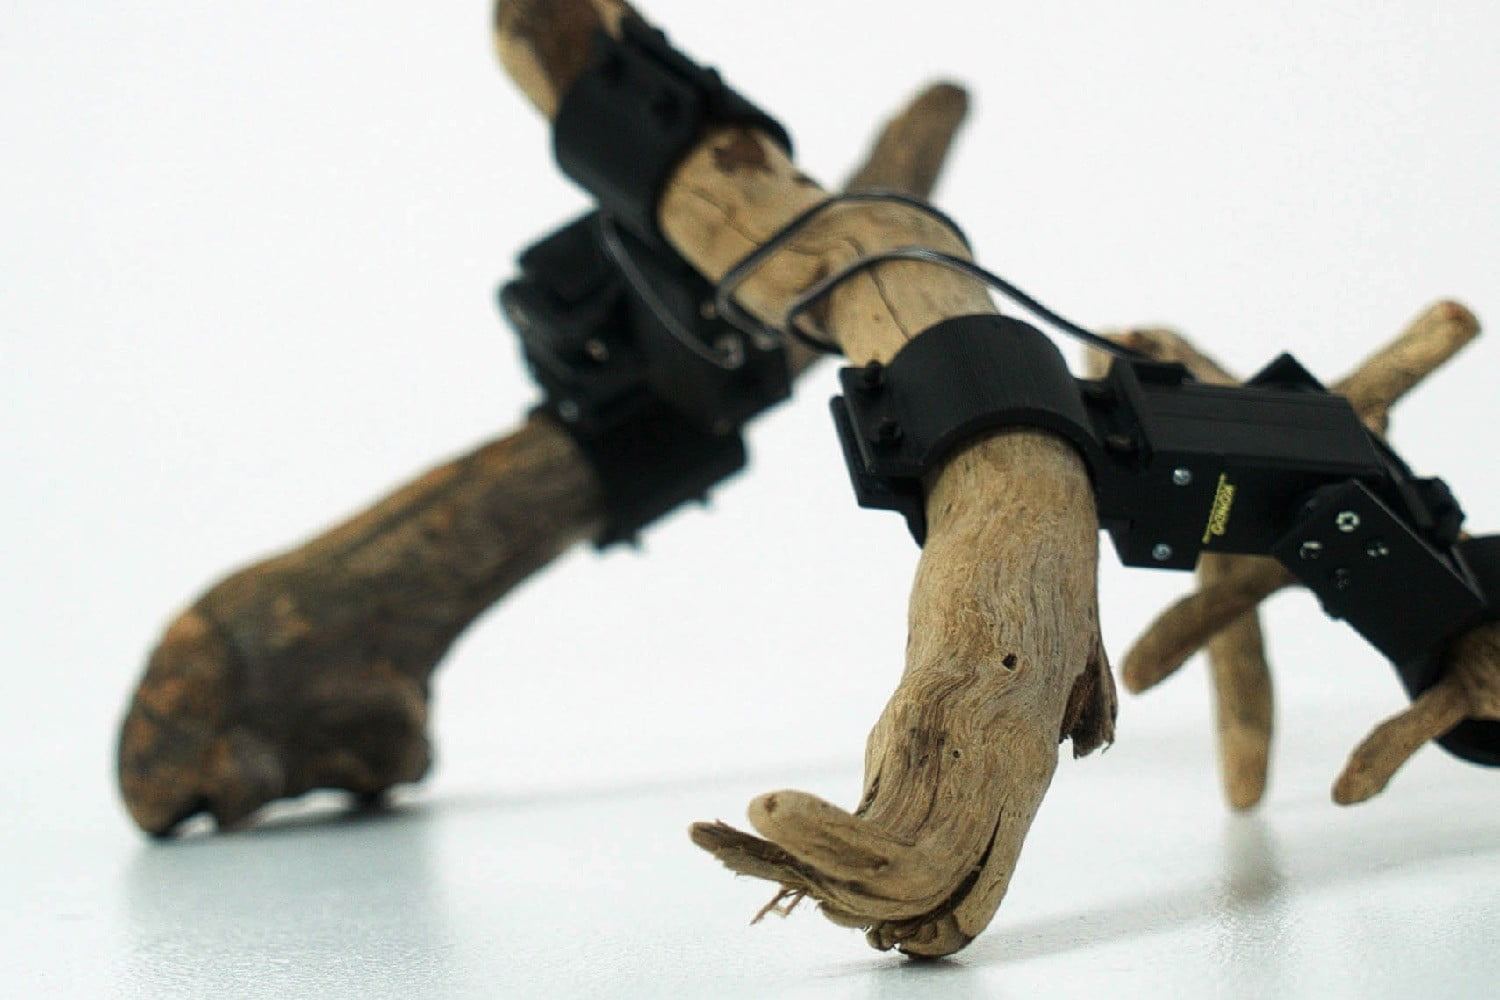 Japanese researchers use deep learning A.I. to get driftwood robots moving